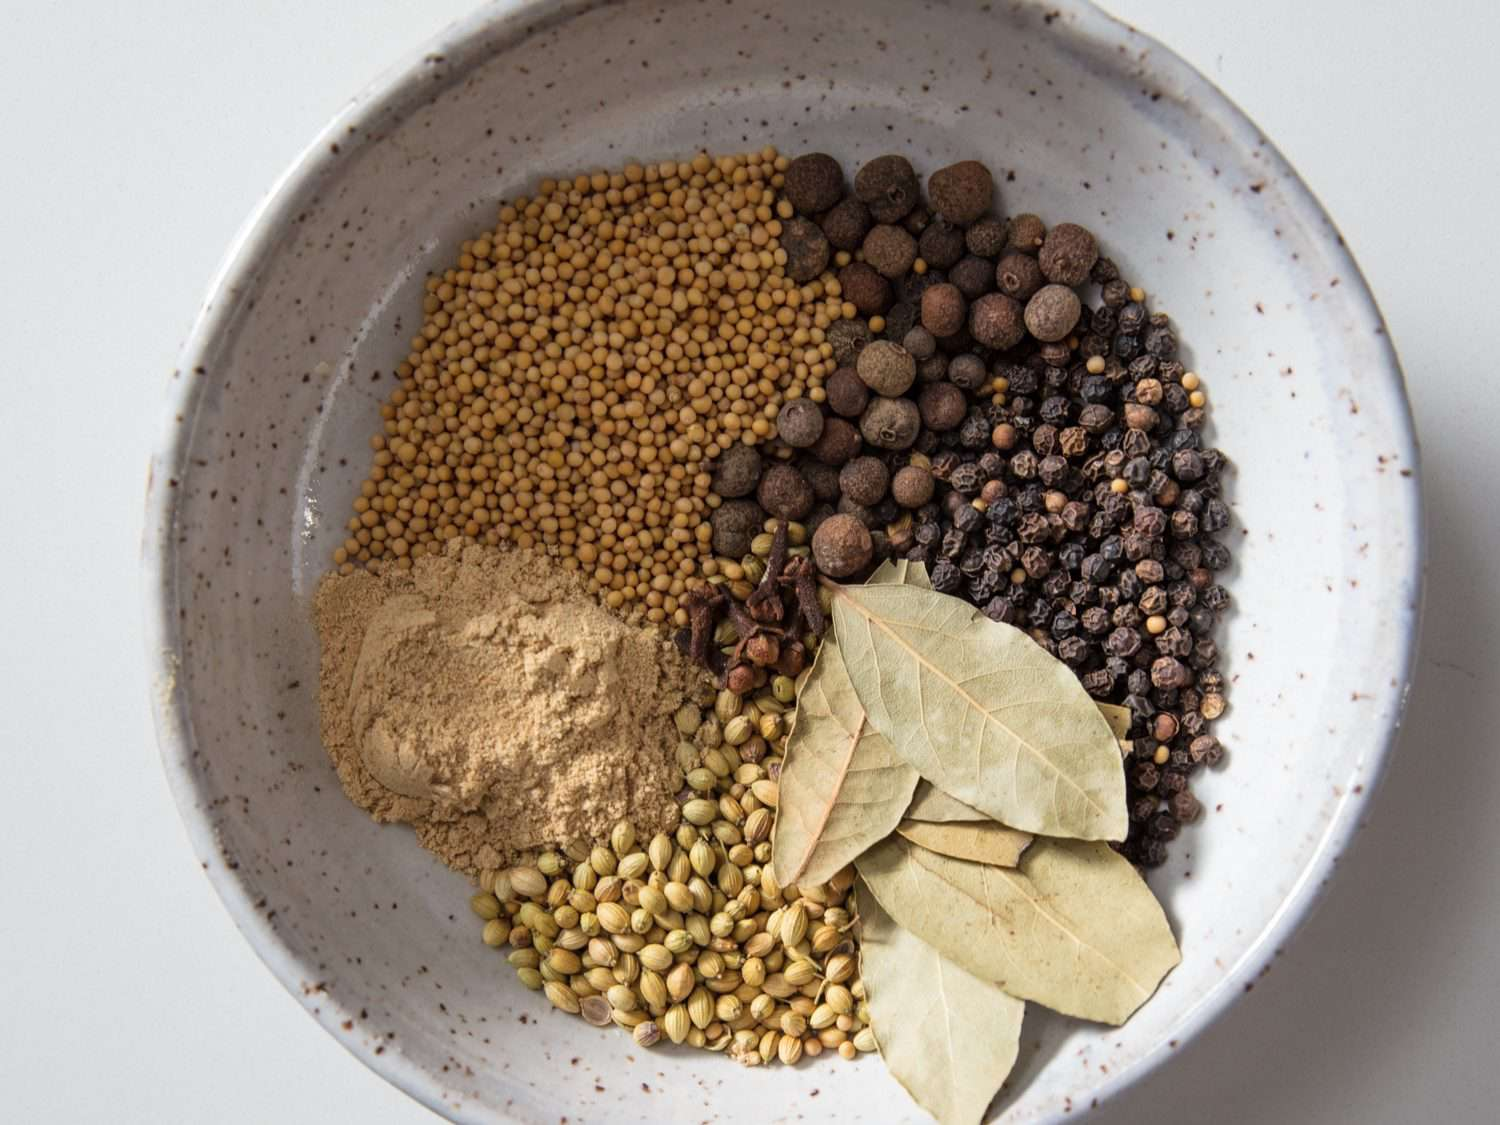 A bowl with ingredients for corned beef rub: mustard seed, allspice, black peppercorns, bay leaves, coriander, and ground ginger.